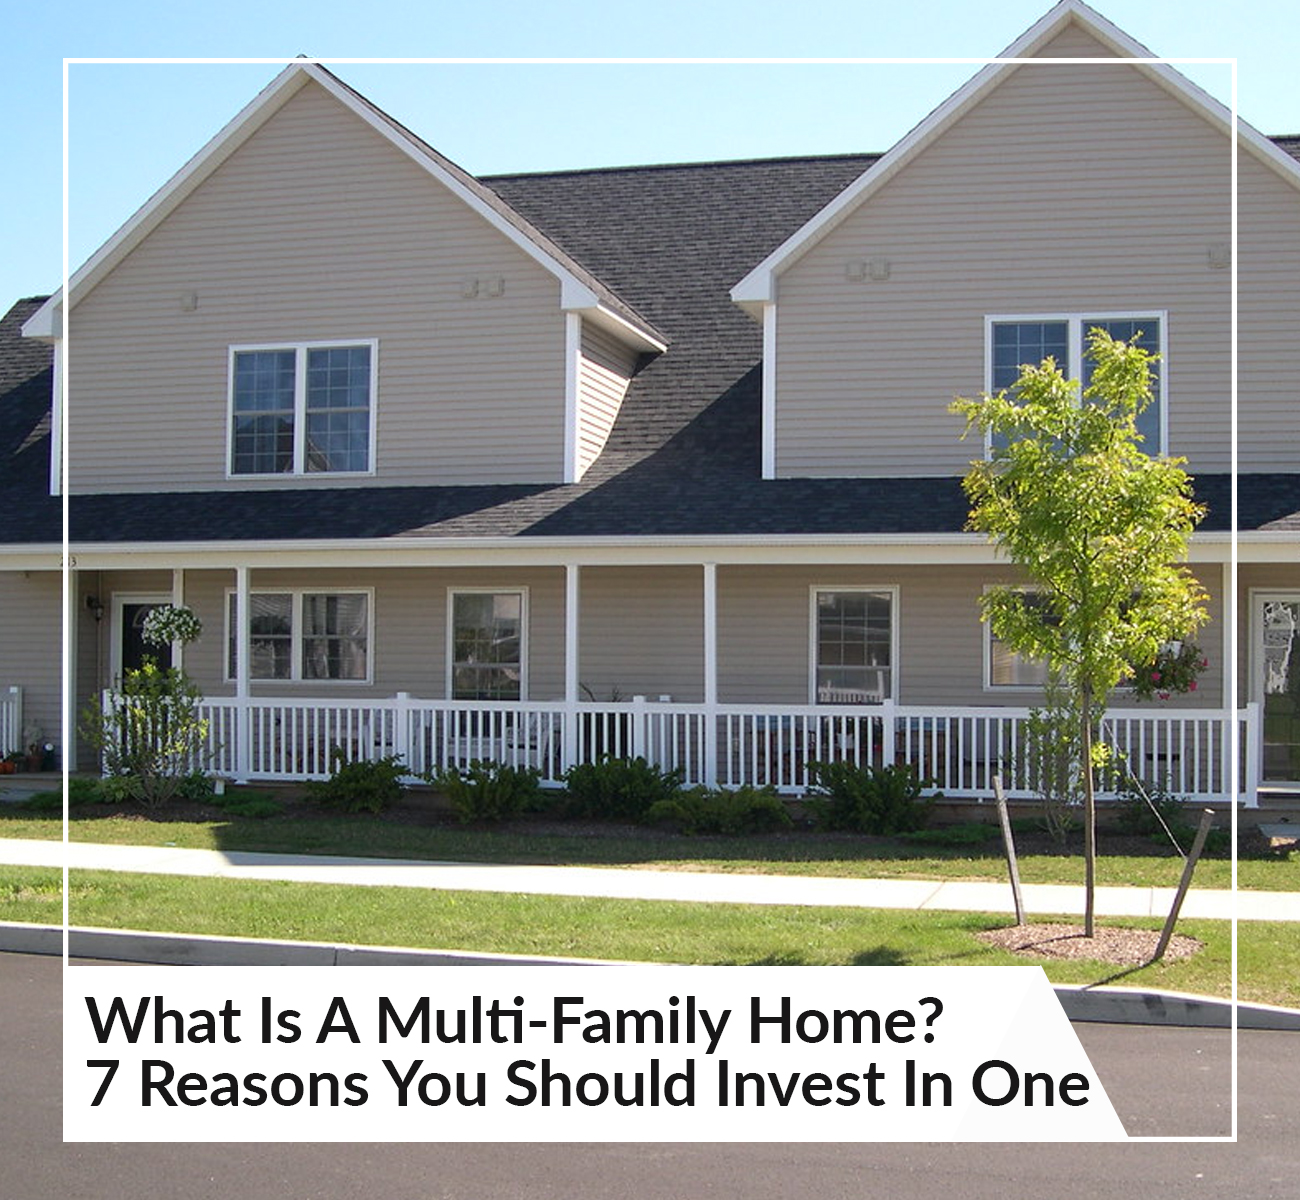 What is a multi-family home?